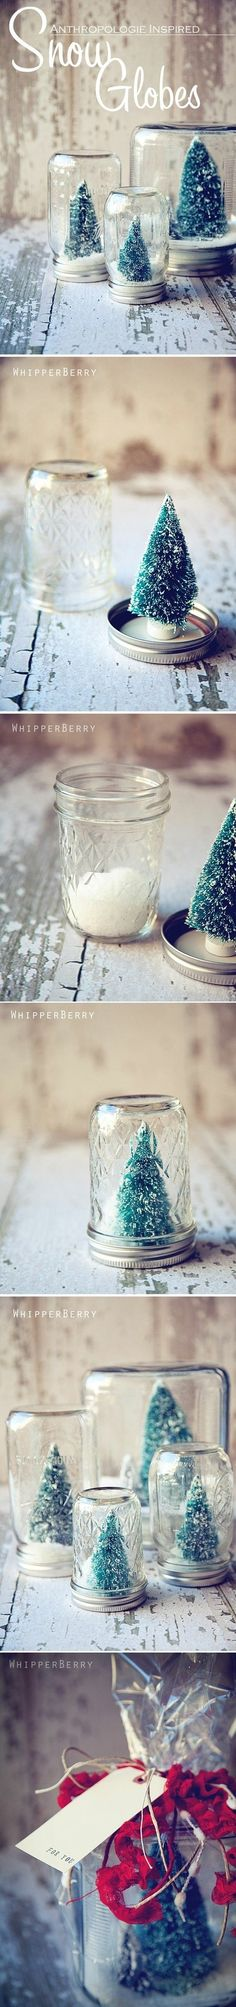 Make snow globes out of jars. | 26 Last-Minute DIY Christmas Hacks |